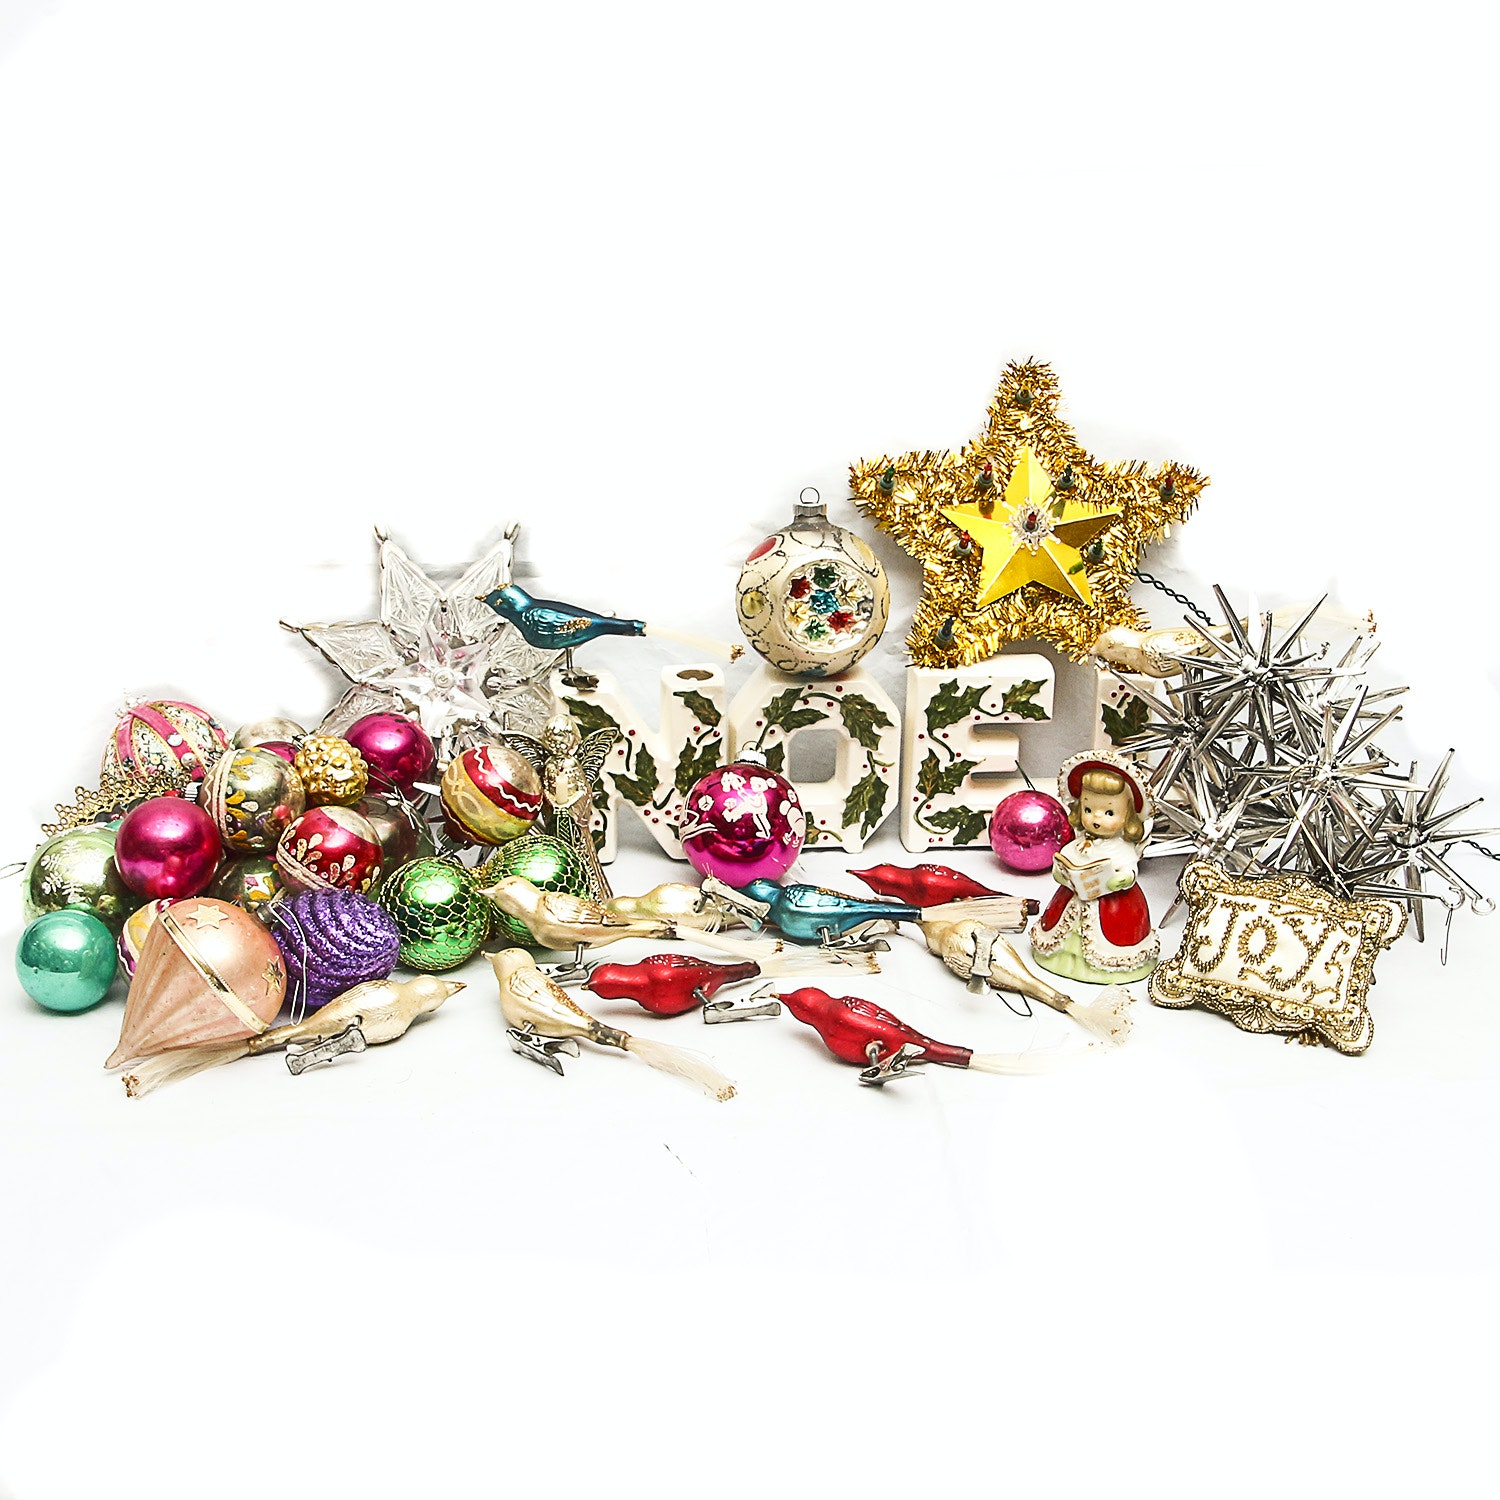 Collection of Vintage Christmas Décor and Ornaments